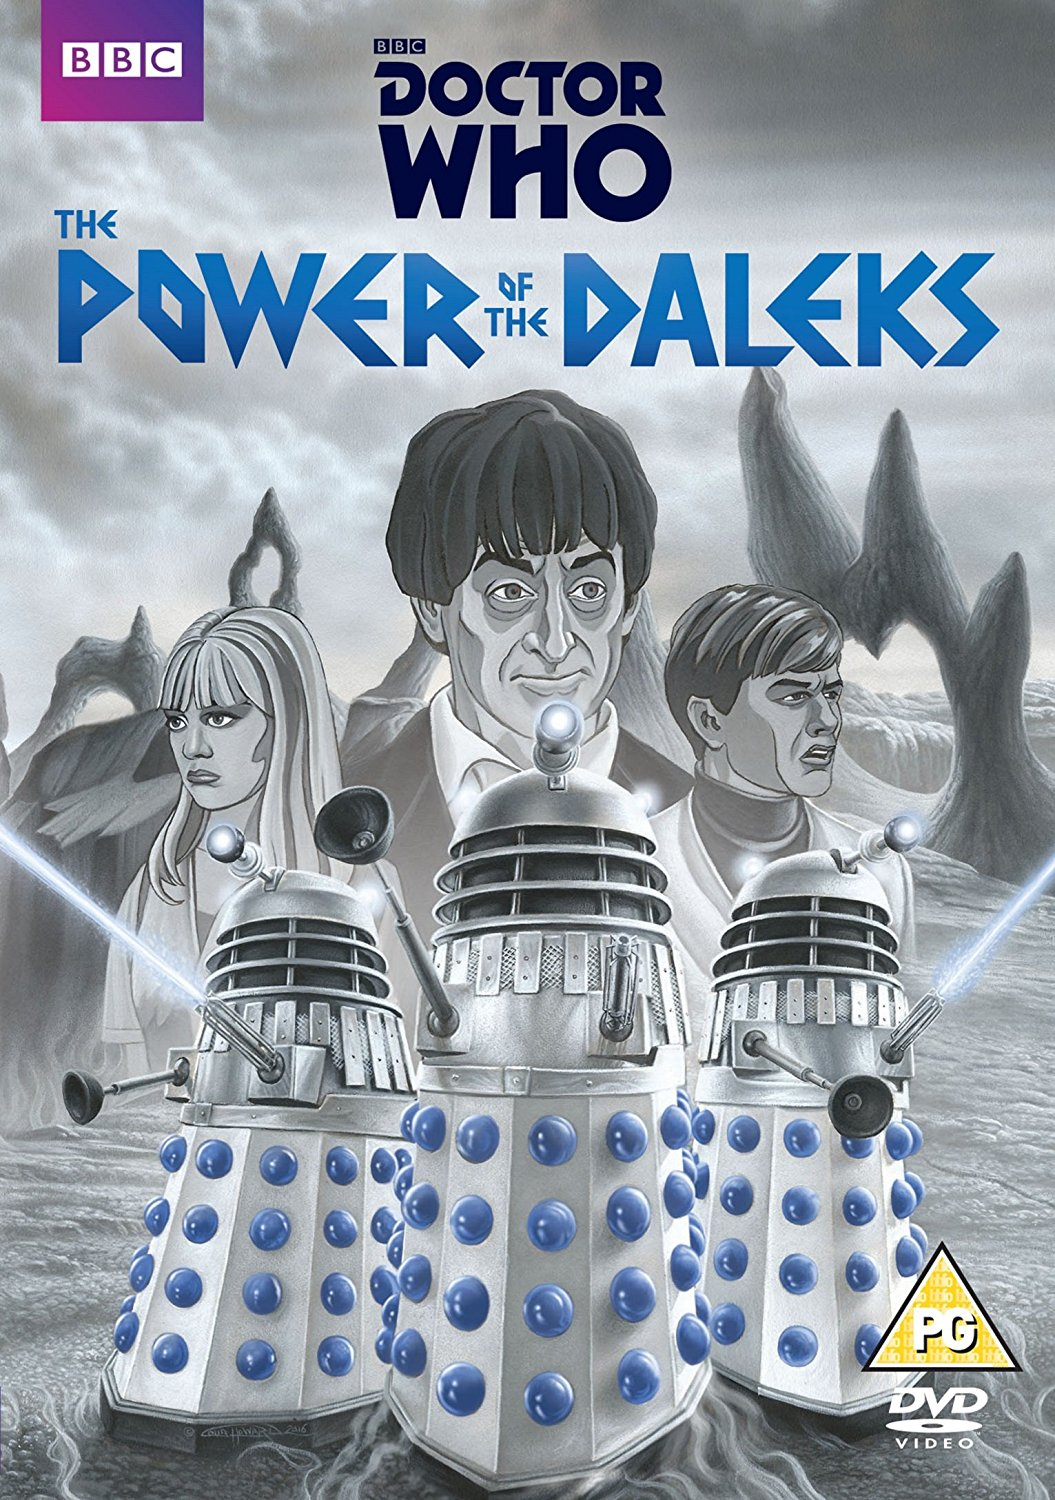 Doctor Who: The Power Of The Daleks DVD review